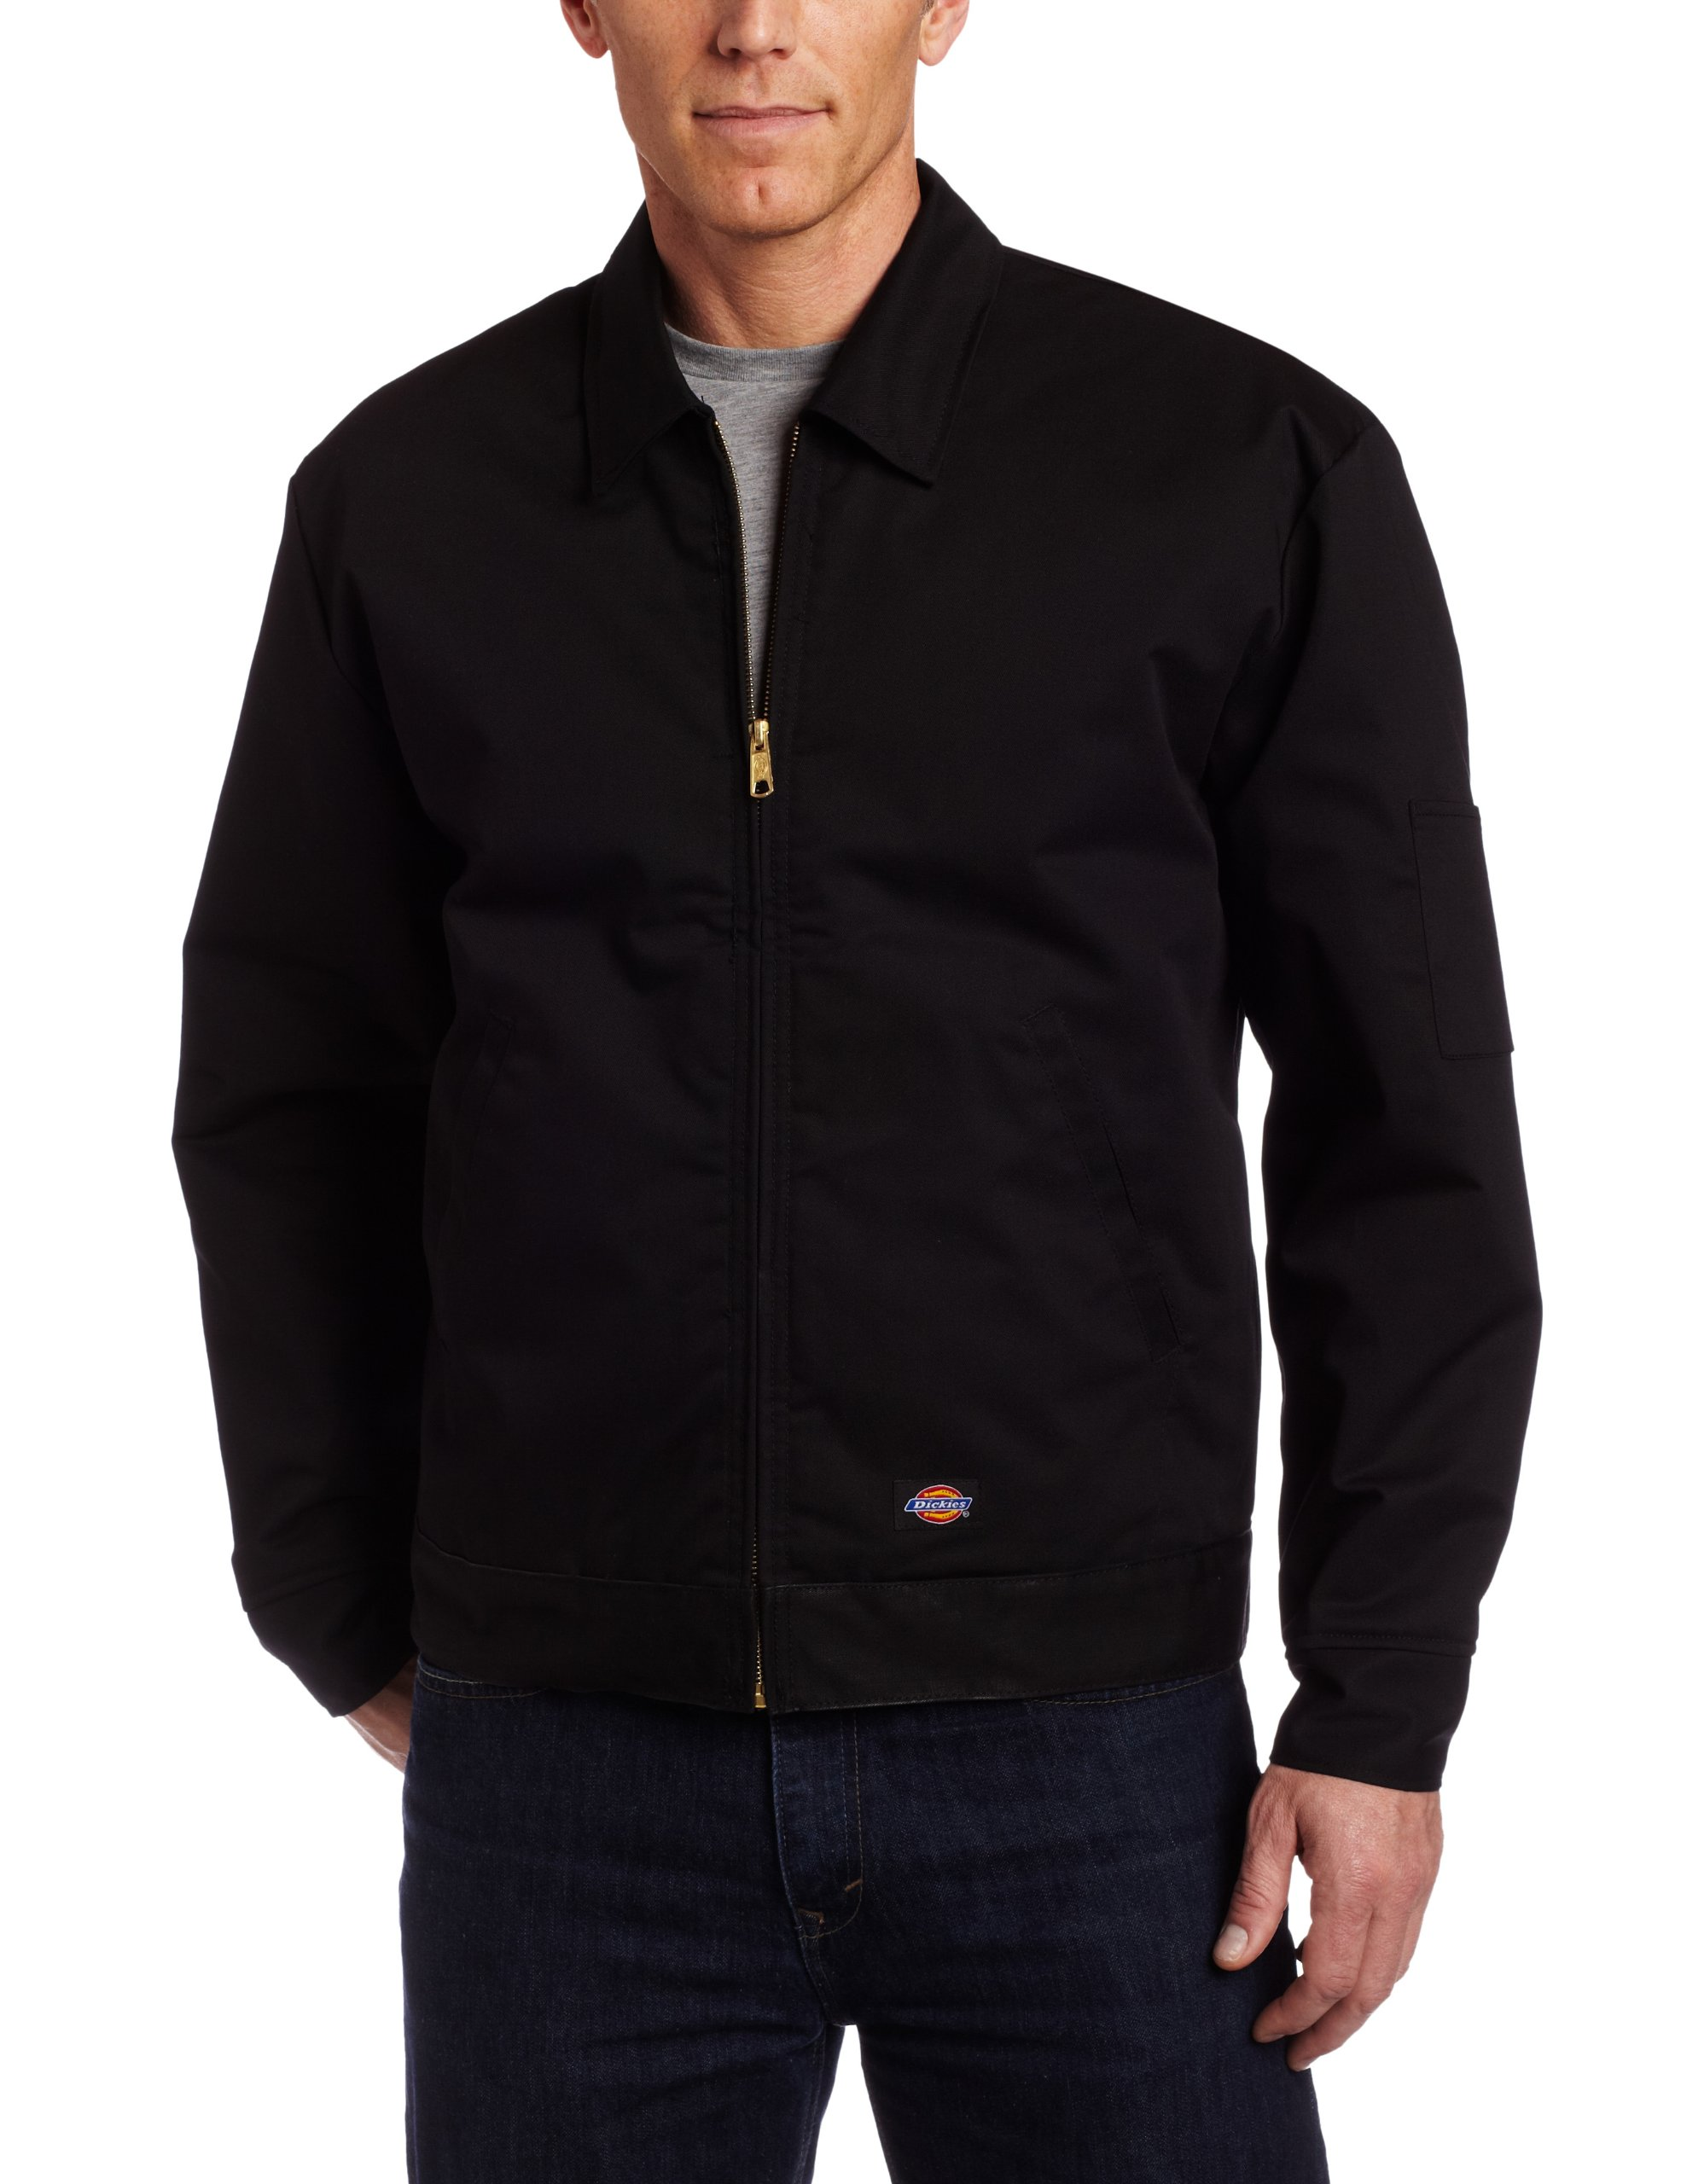 Dickies Men's Big-Tall Insulated Eisenhower Jacket, Black, XX-Large Tall by dickies